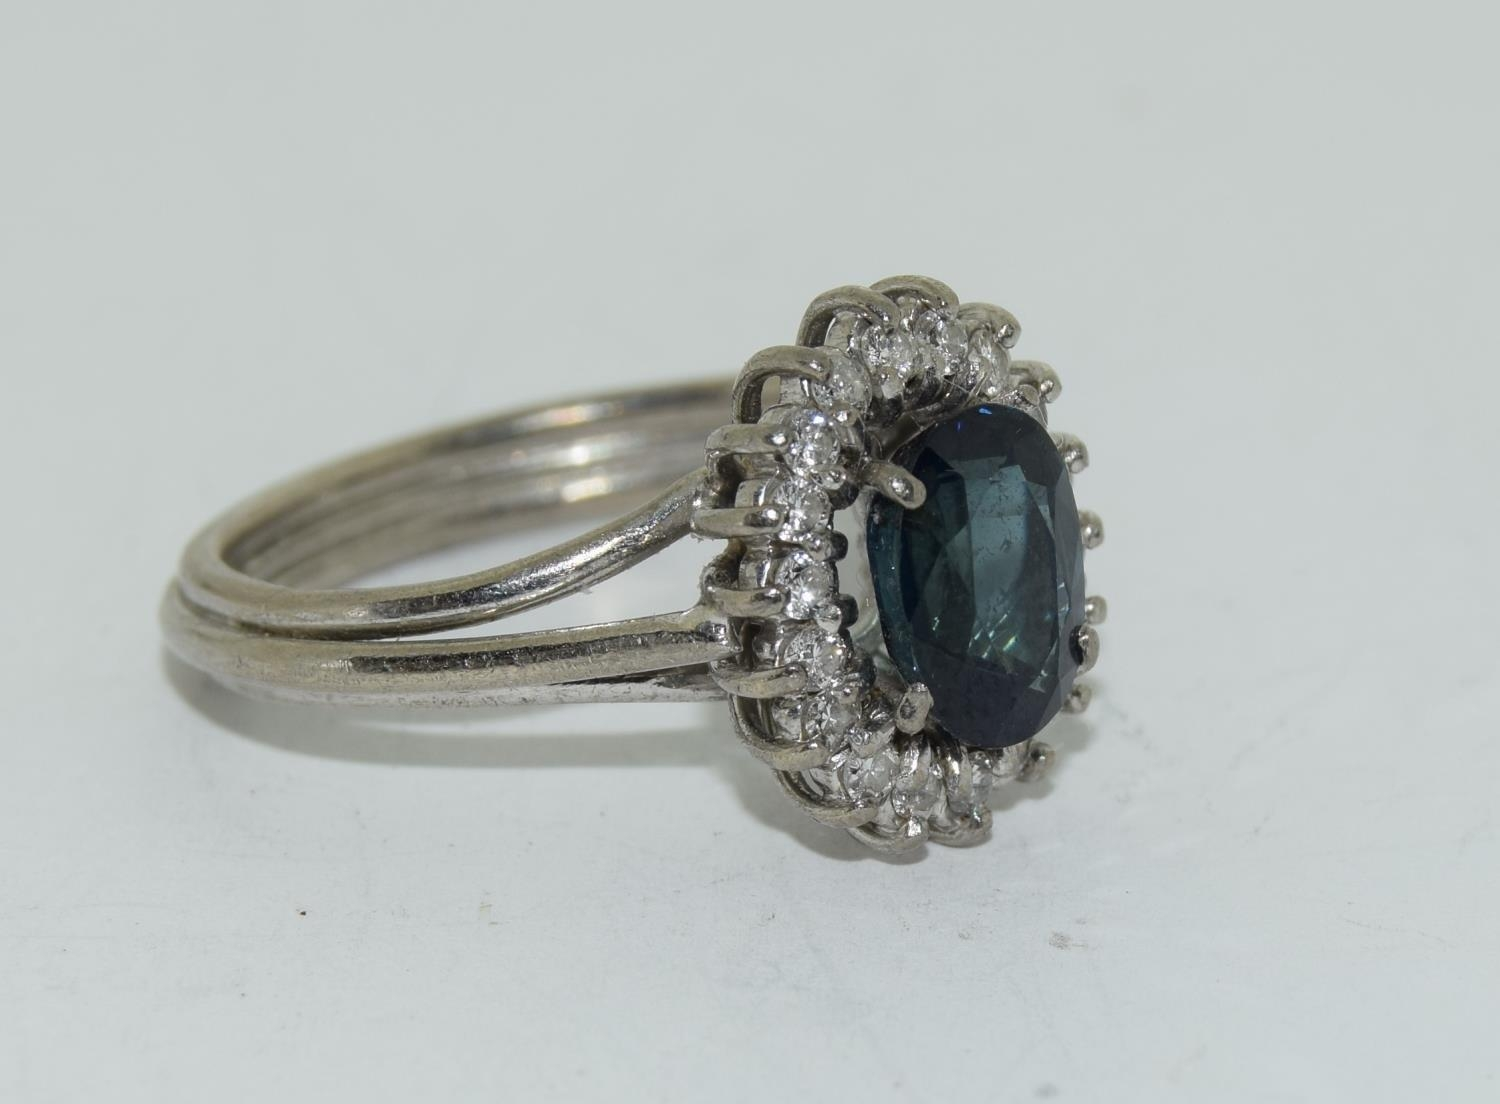 An 18ct white gold ladies diamond and sapphire ring, Size L - Image 5 of 6